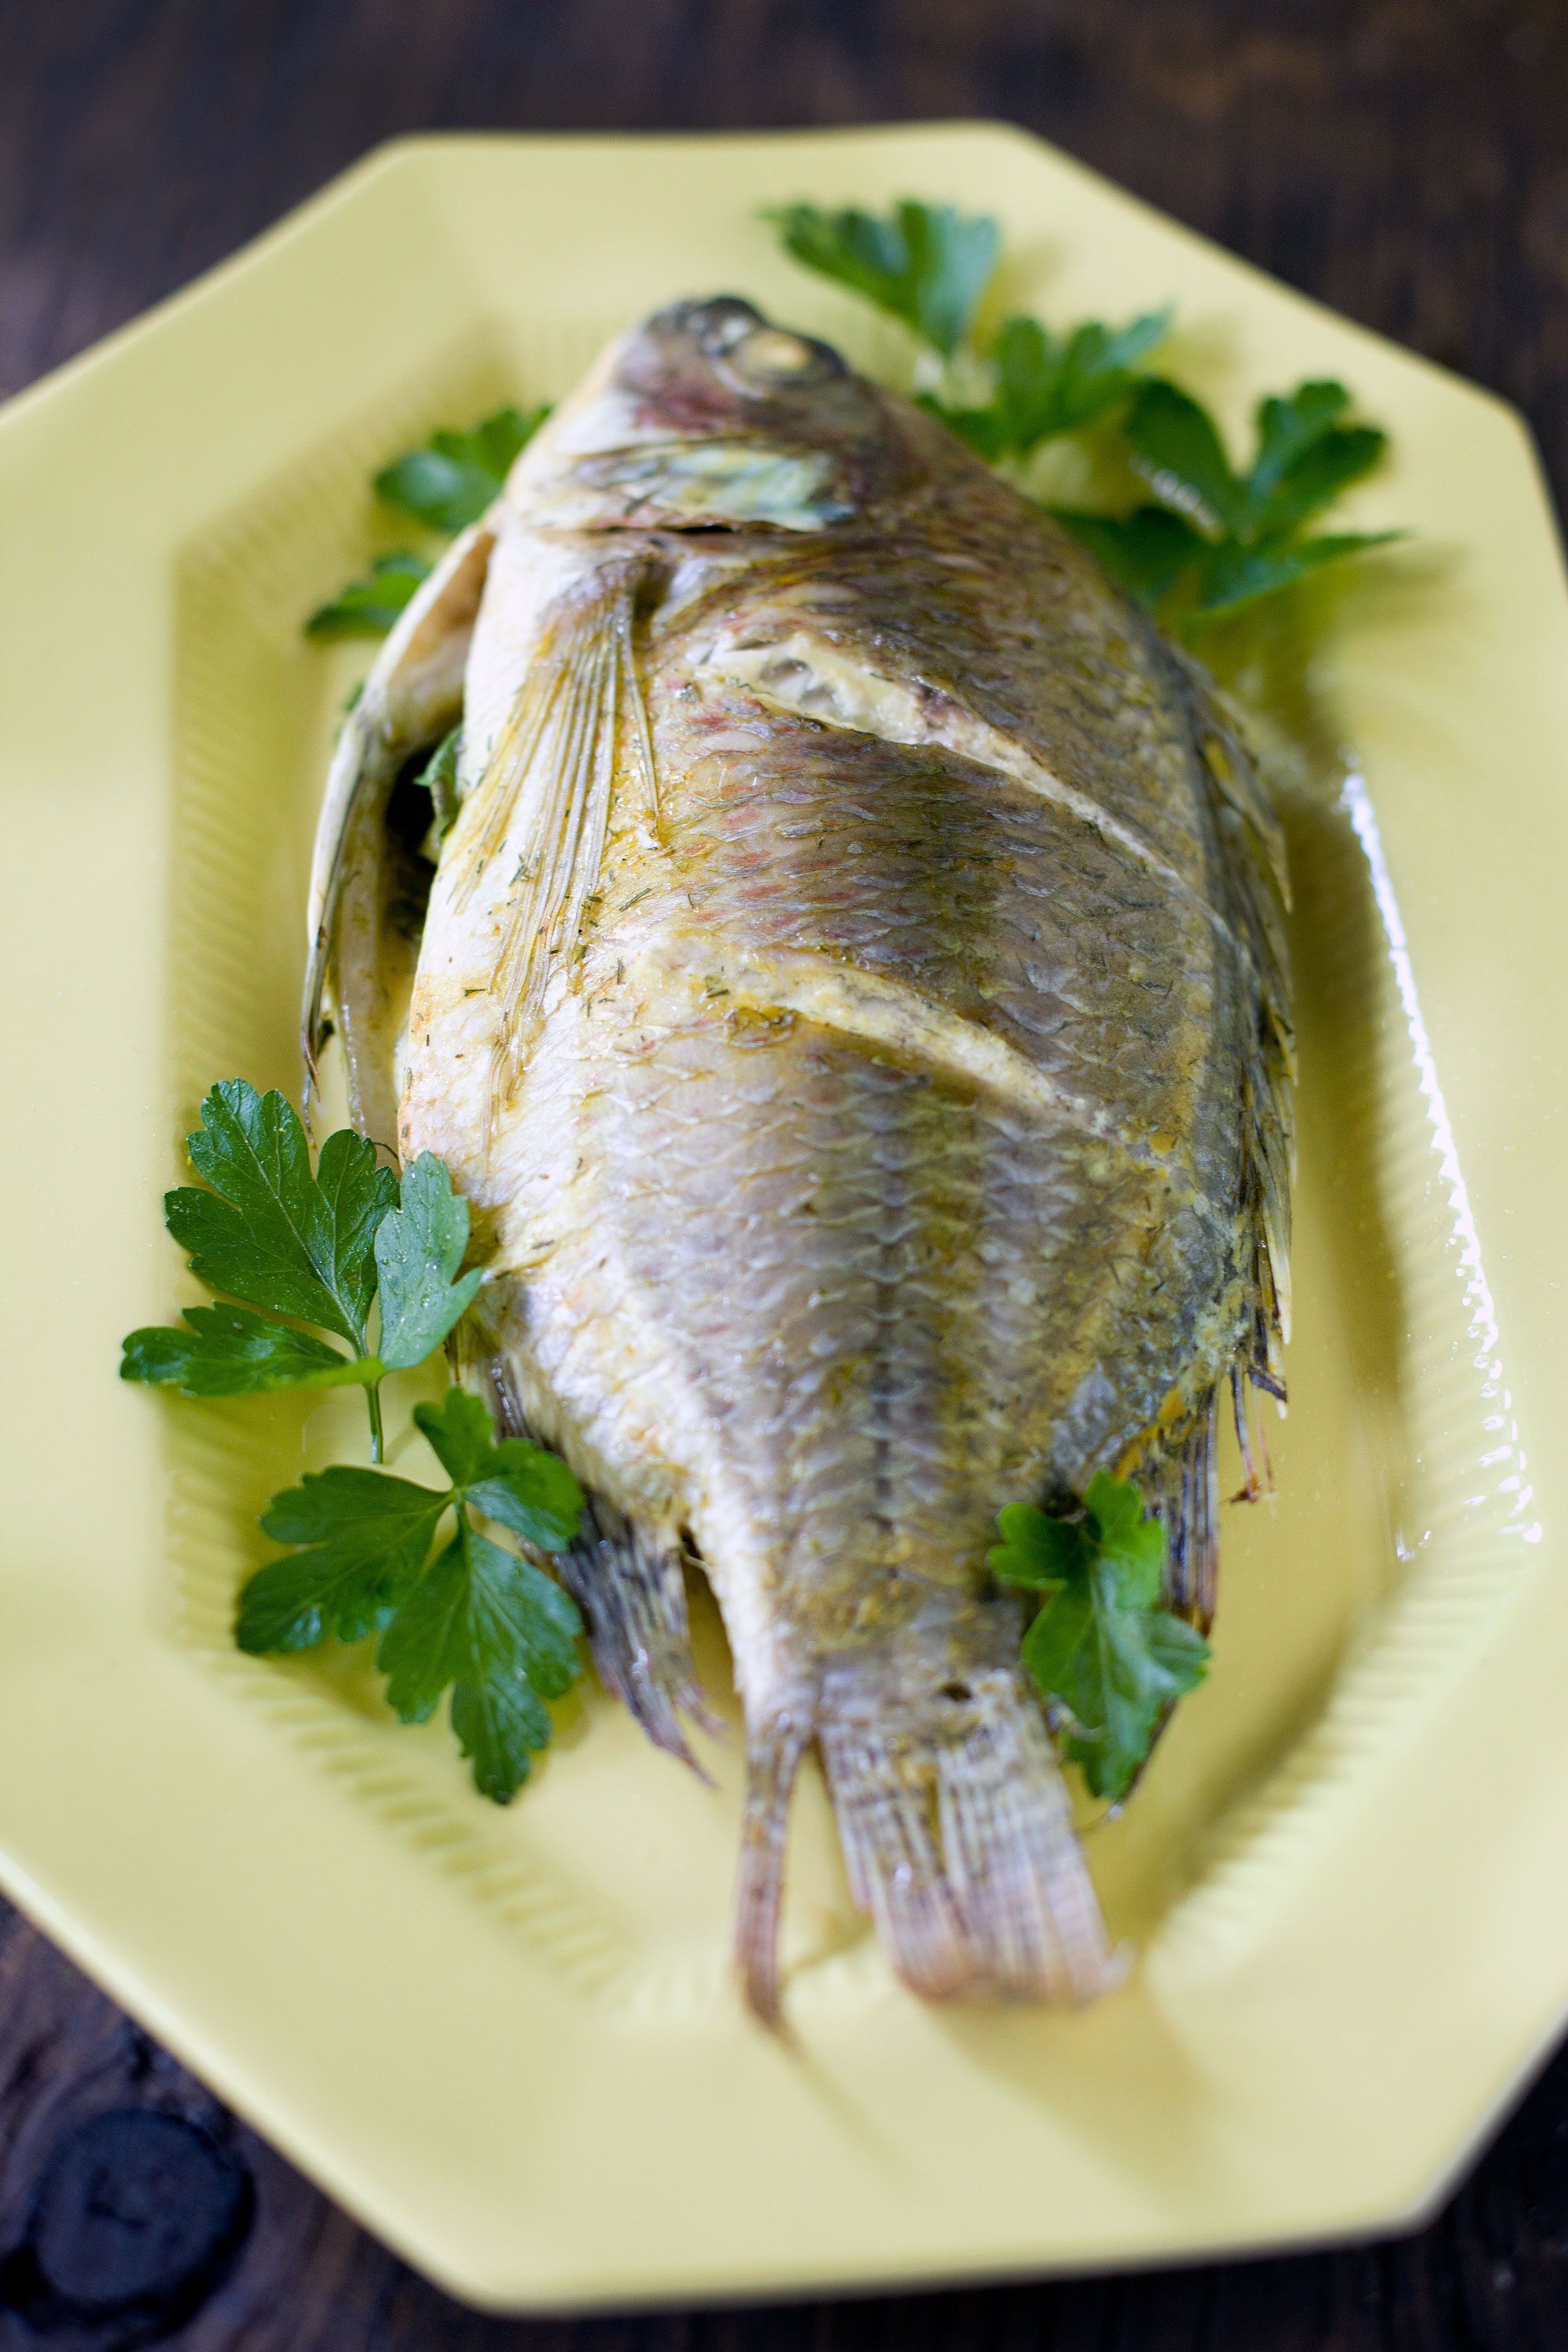 Baked tilapia recipe and how to cook a whole fish eating for Tilapia fish recipes